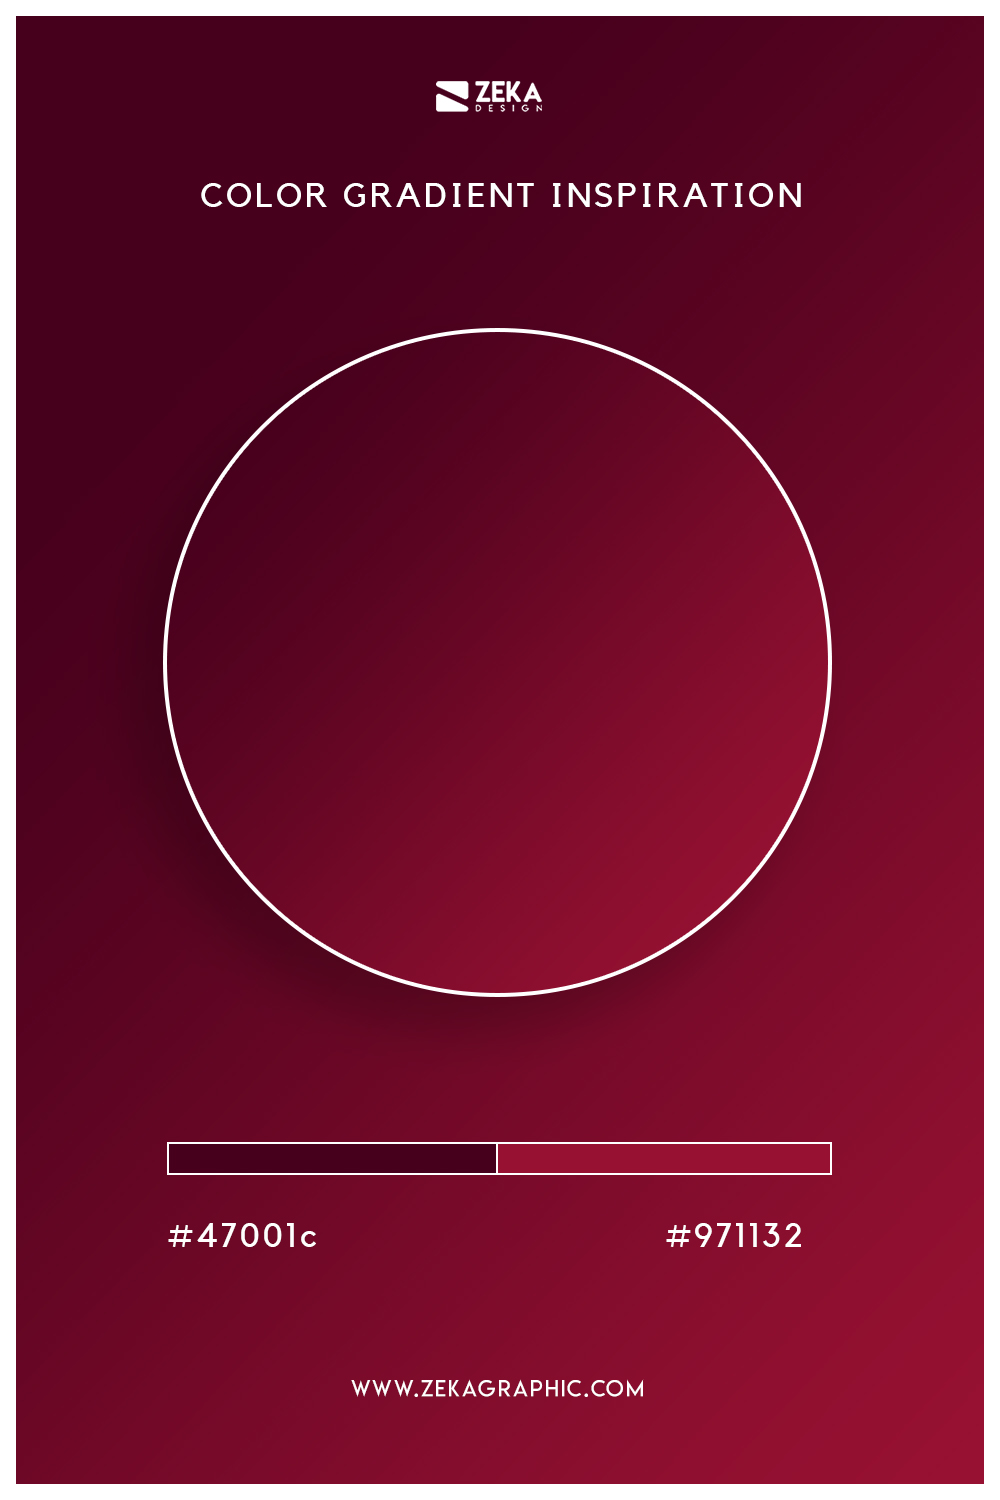 06 Blackberry Bright Red Autumn Color Gradient Inspiration